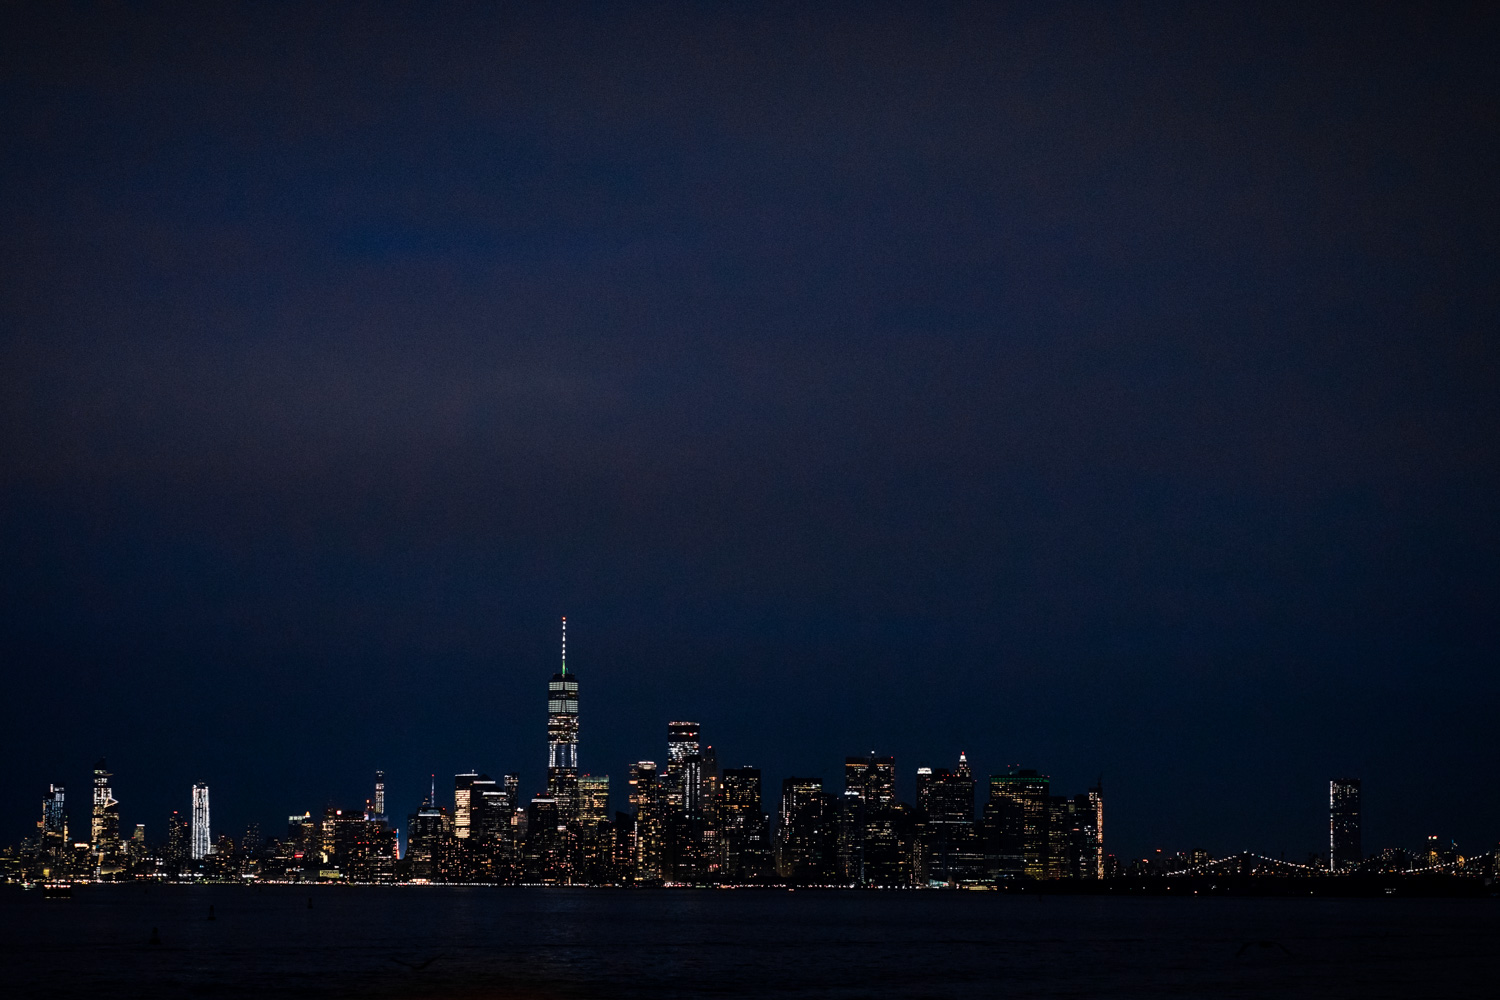 A view of Manhattan at night, as seen from the Staten Island Ferry.